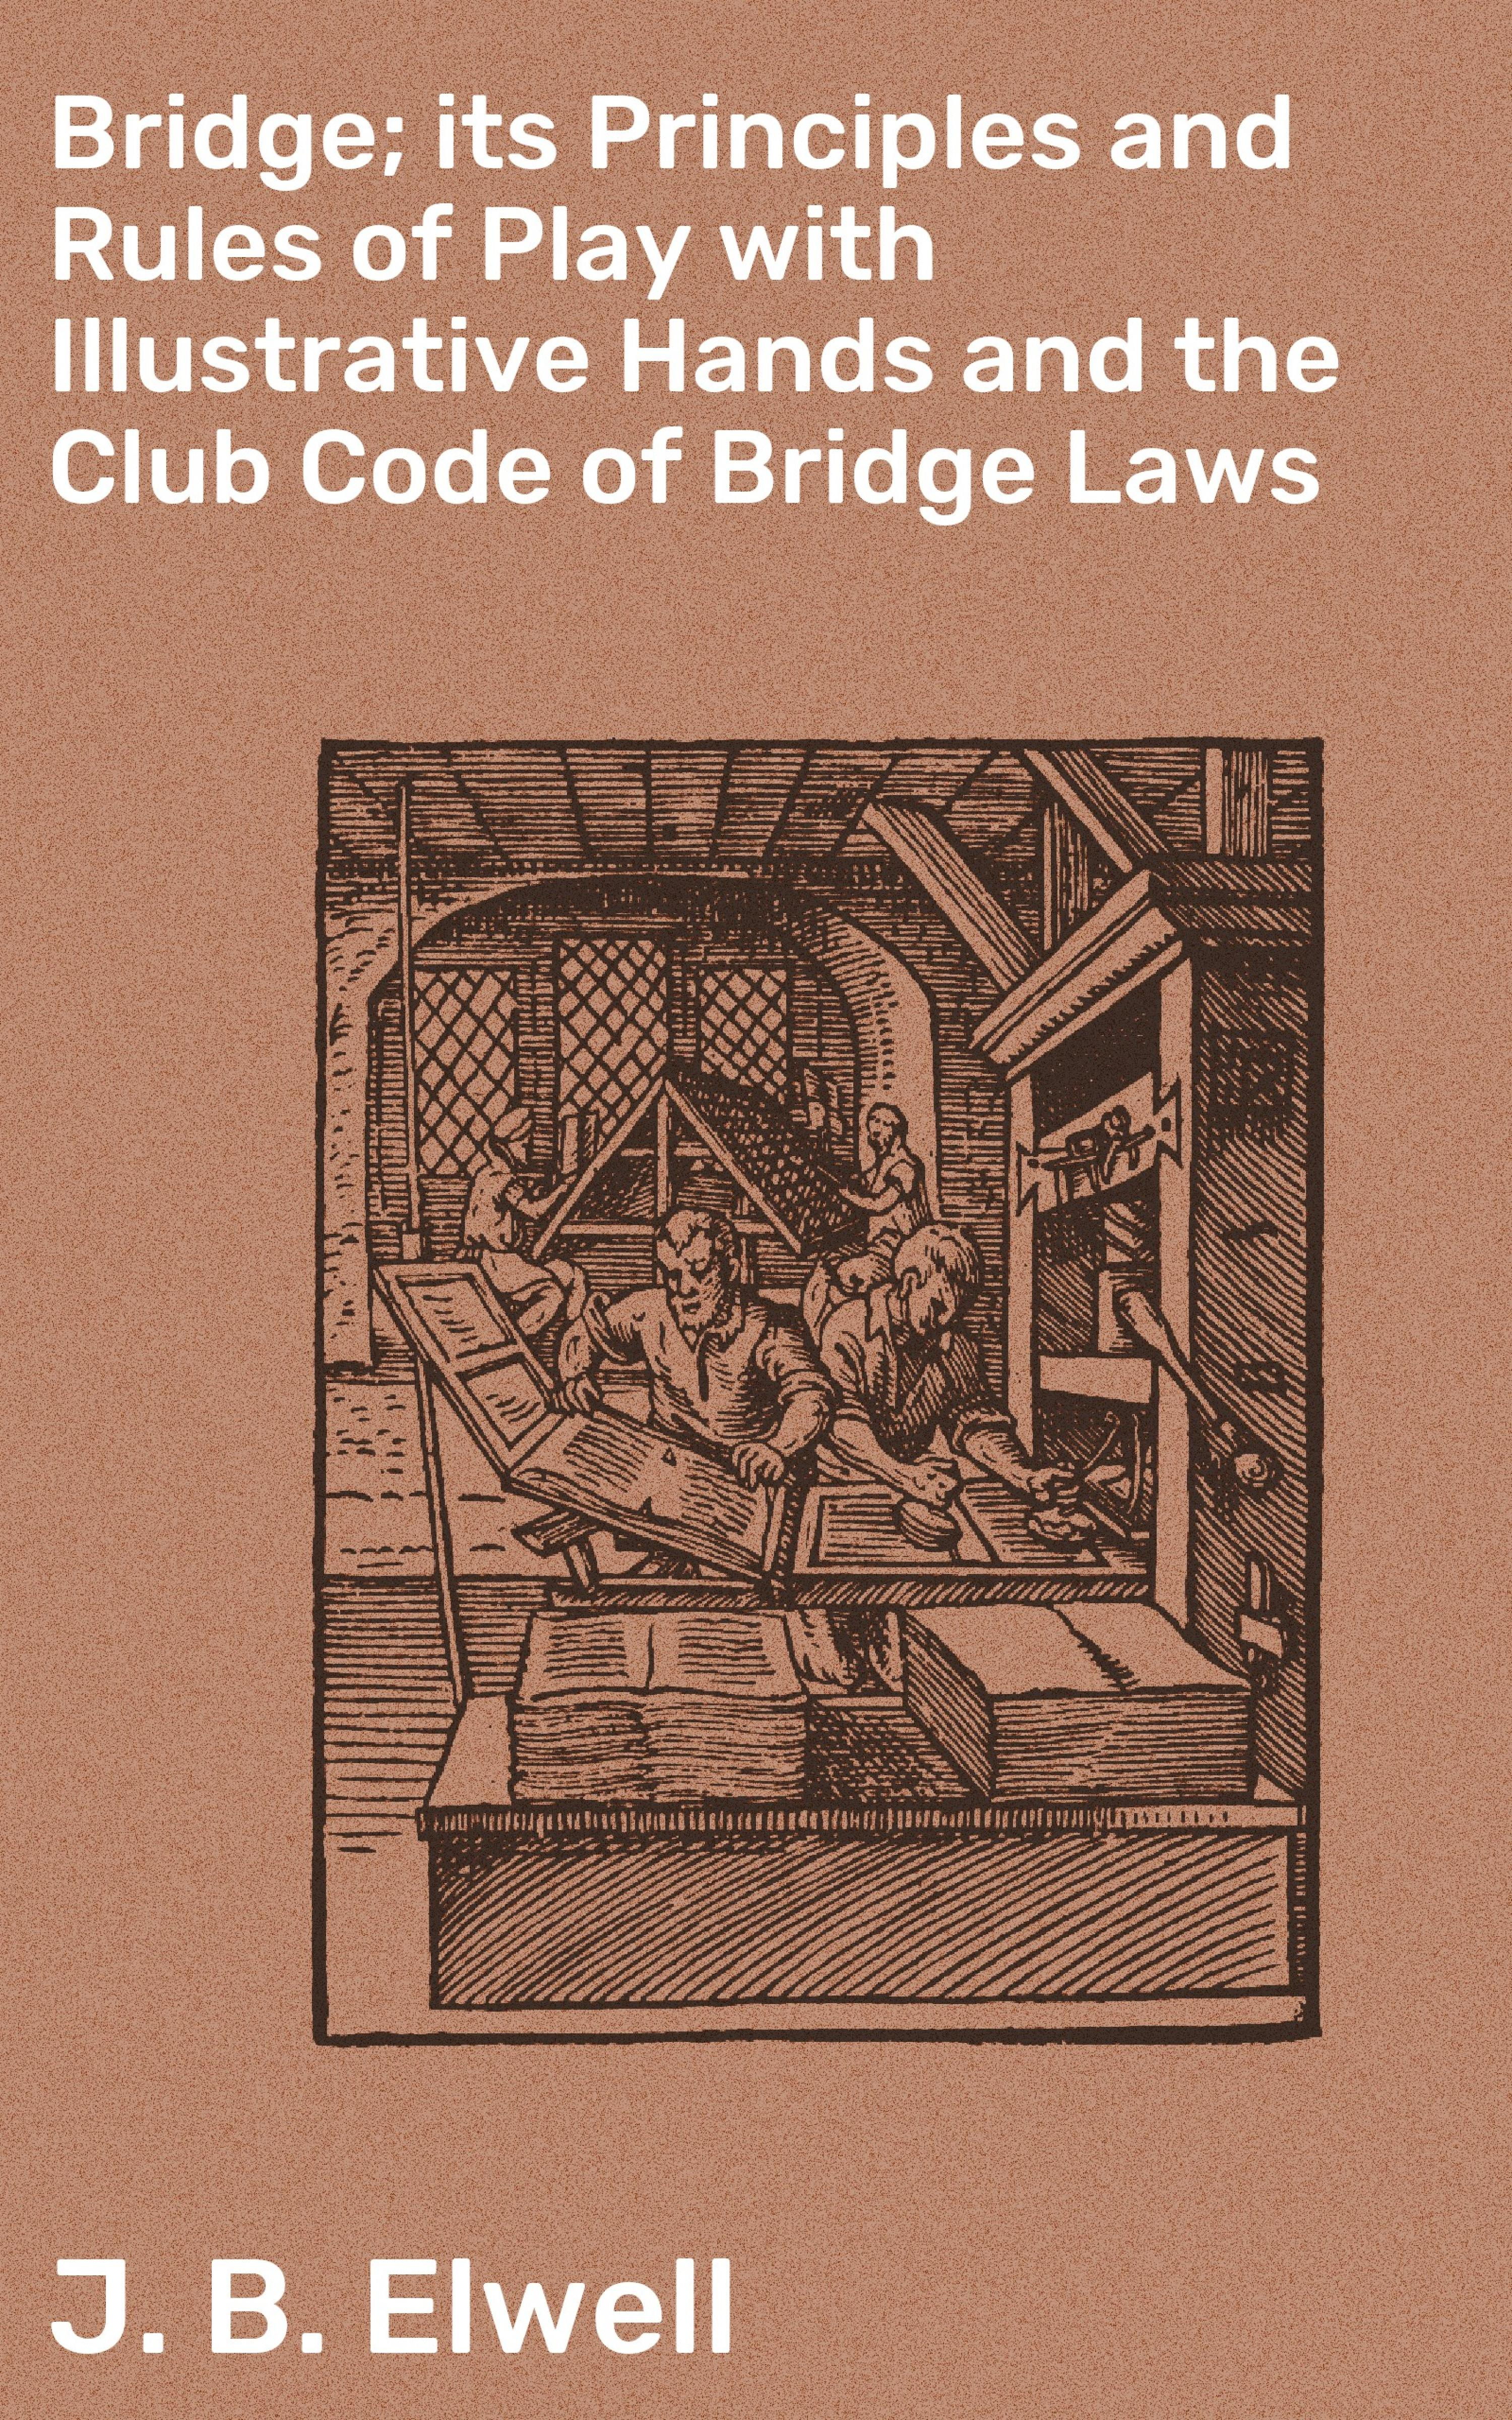 J. B. Elwell Bridge; its Principles and Rules of Play with Illustrative Hands and the Club Code of Bridge Laws